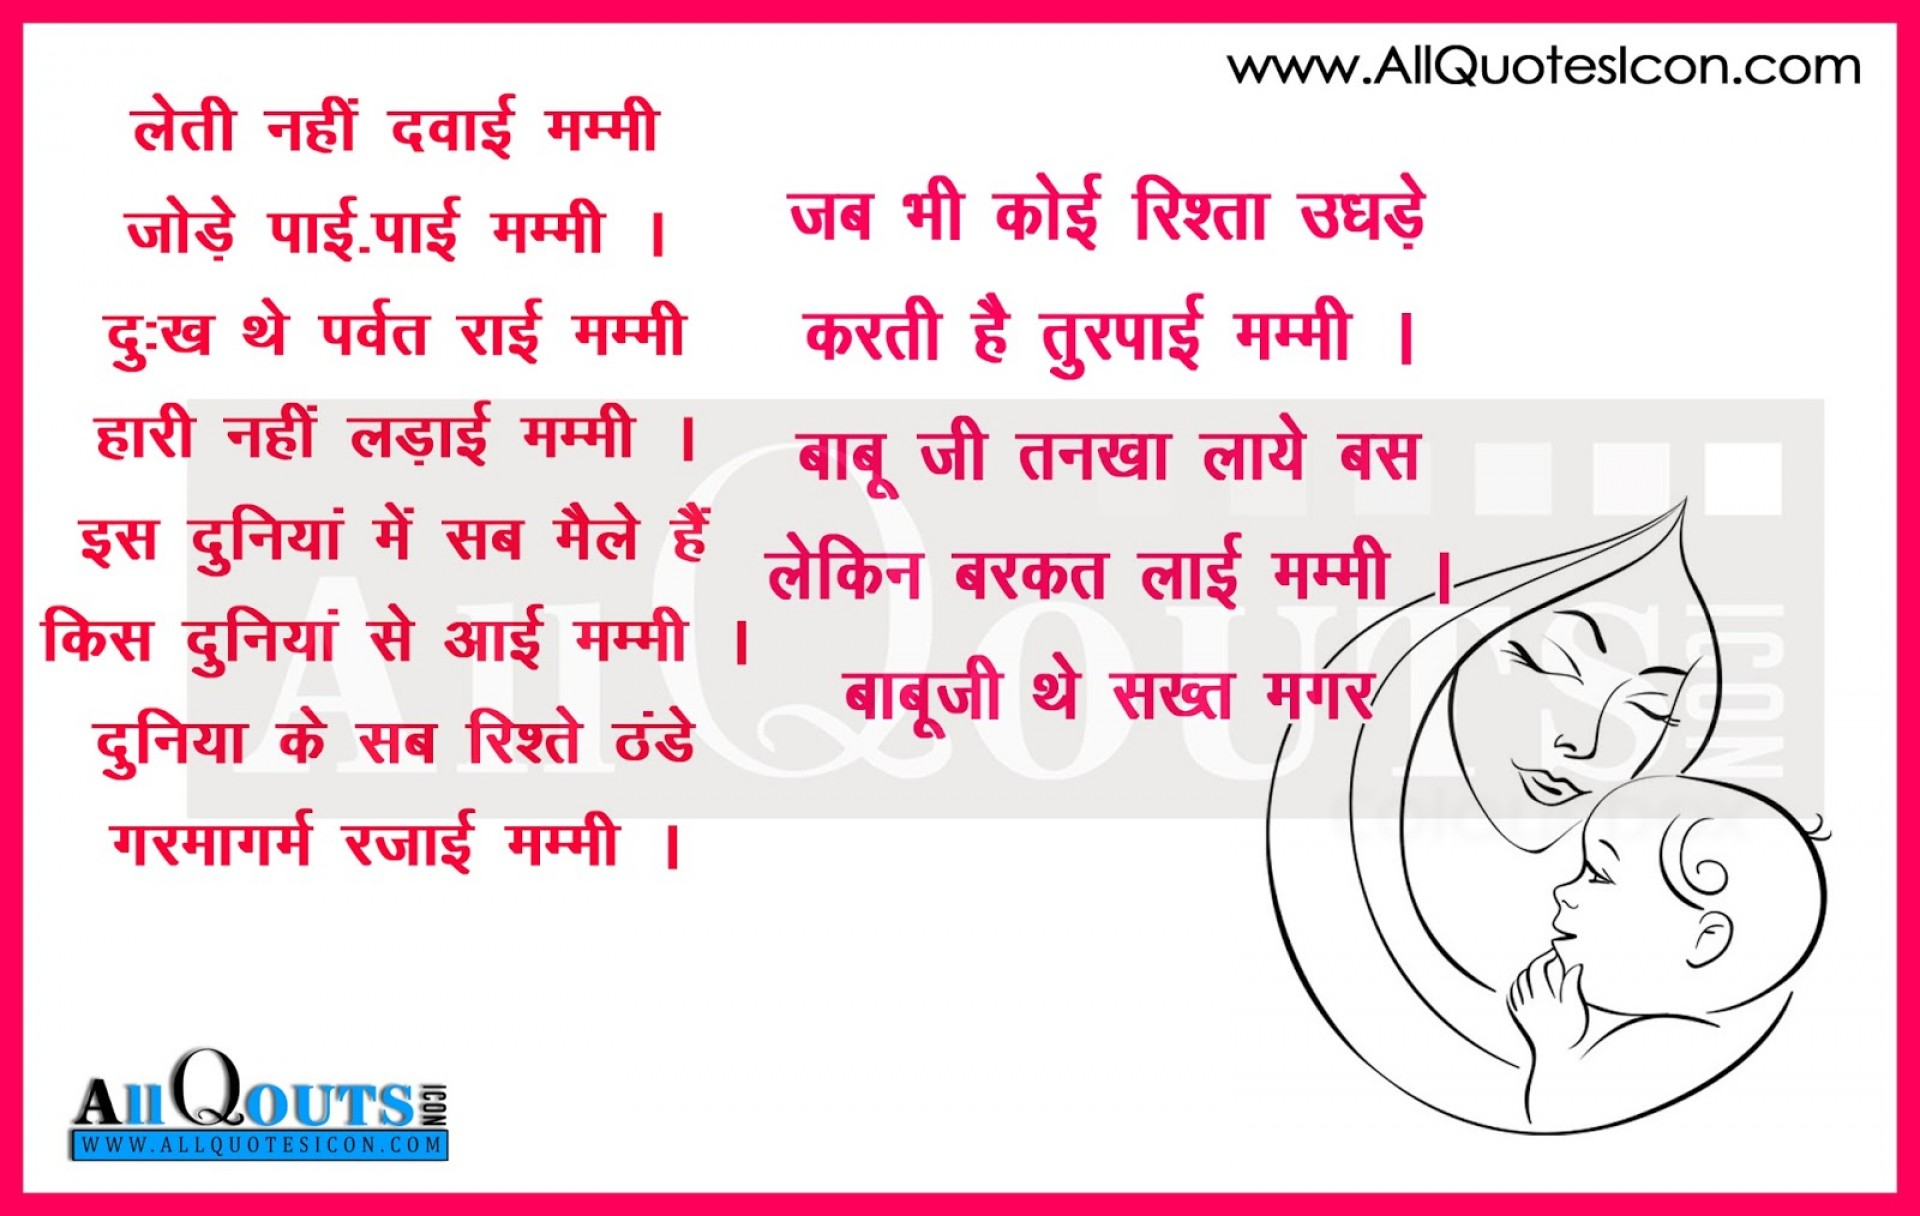 014 Essay Example Hindi Mothers Day Wishes Images Quotes Sms Messages Top In Kannada Contest Mother's Telugu 1920